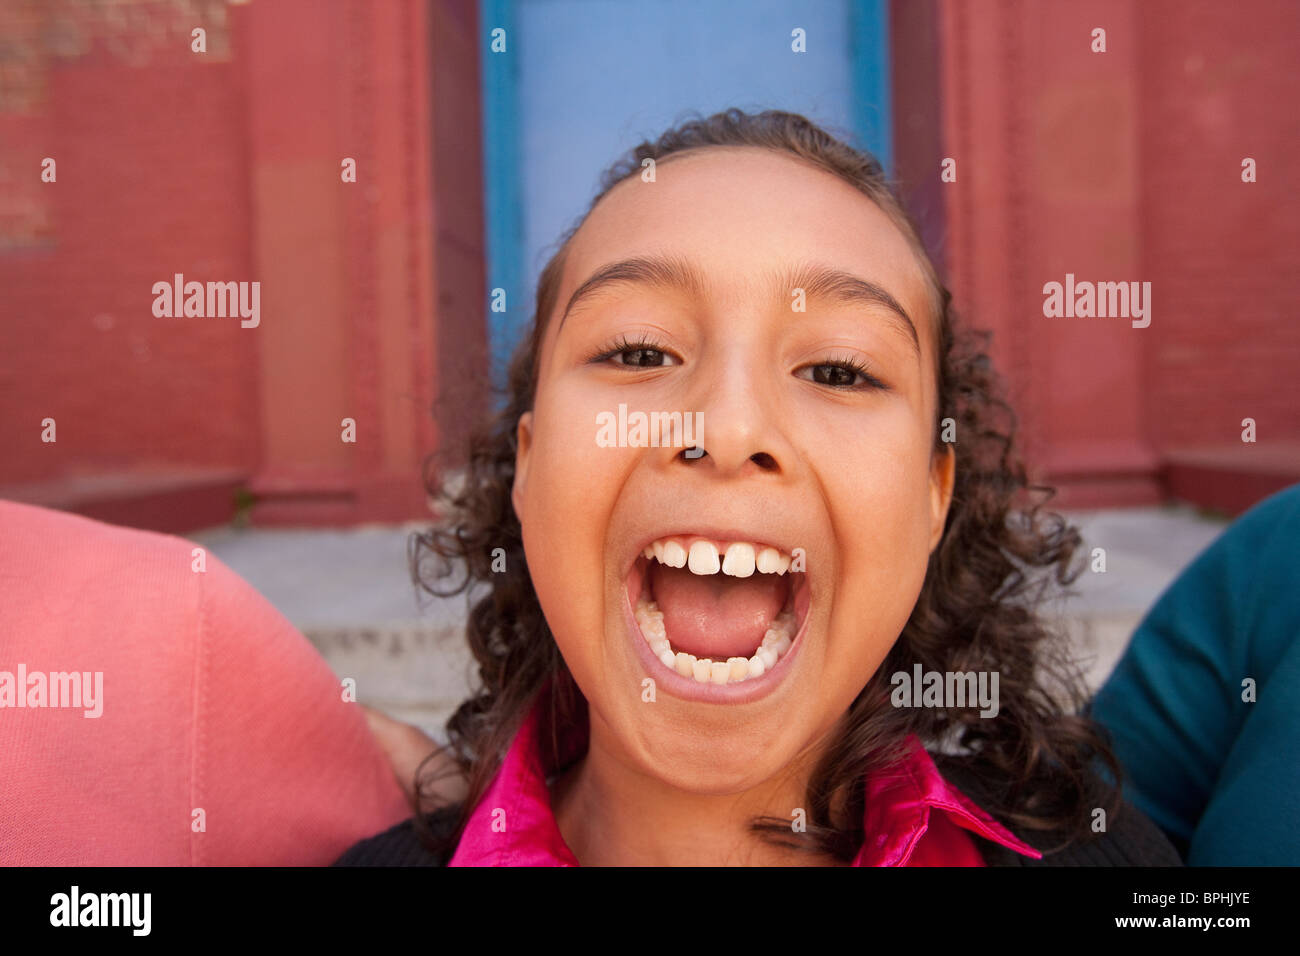 Young Girl making a face, Boston, Massachusetts, USA Photo Stock